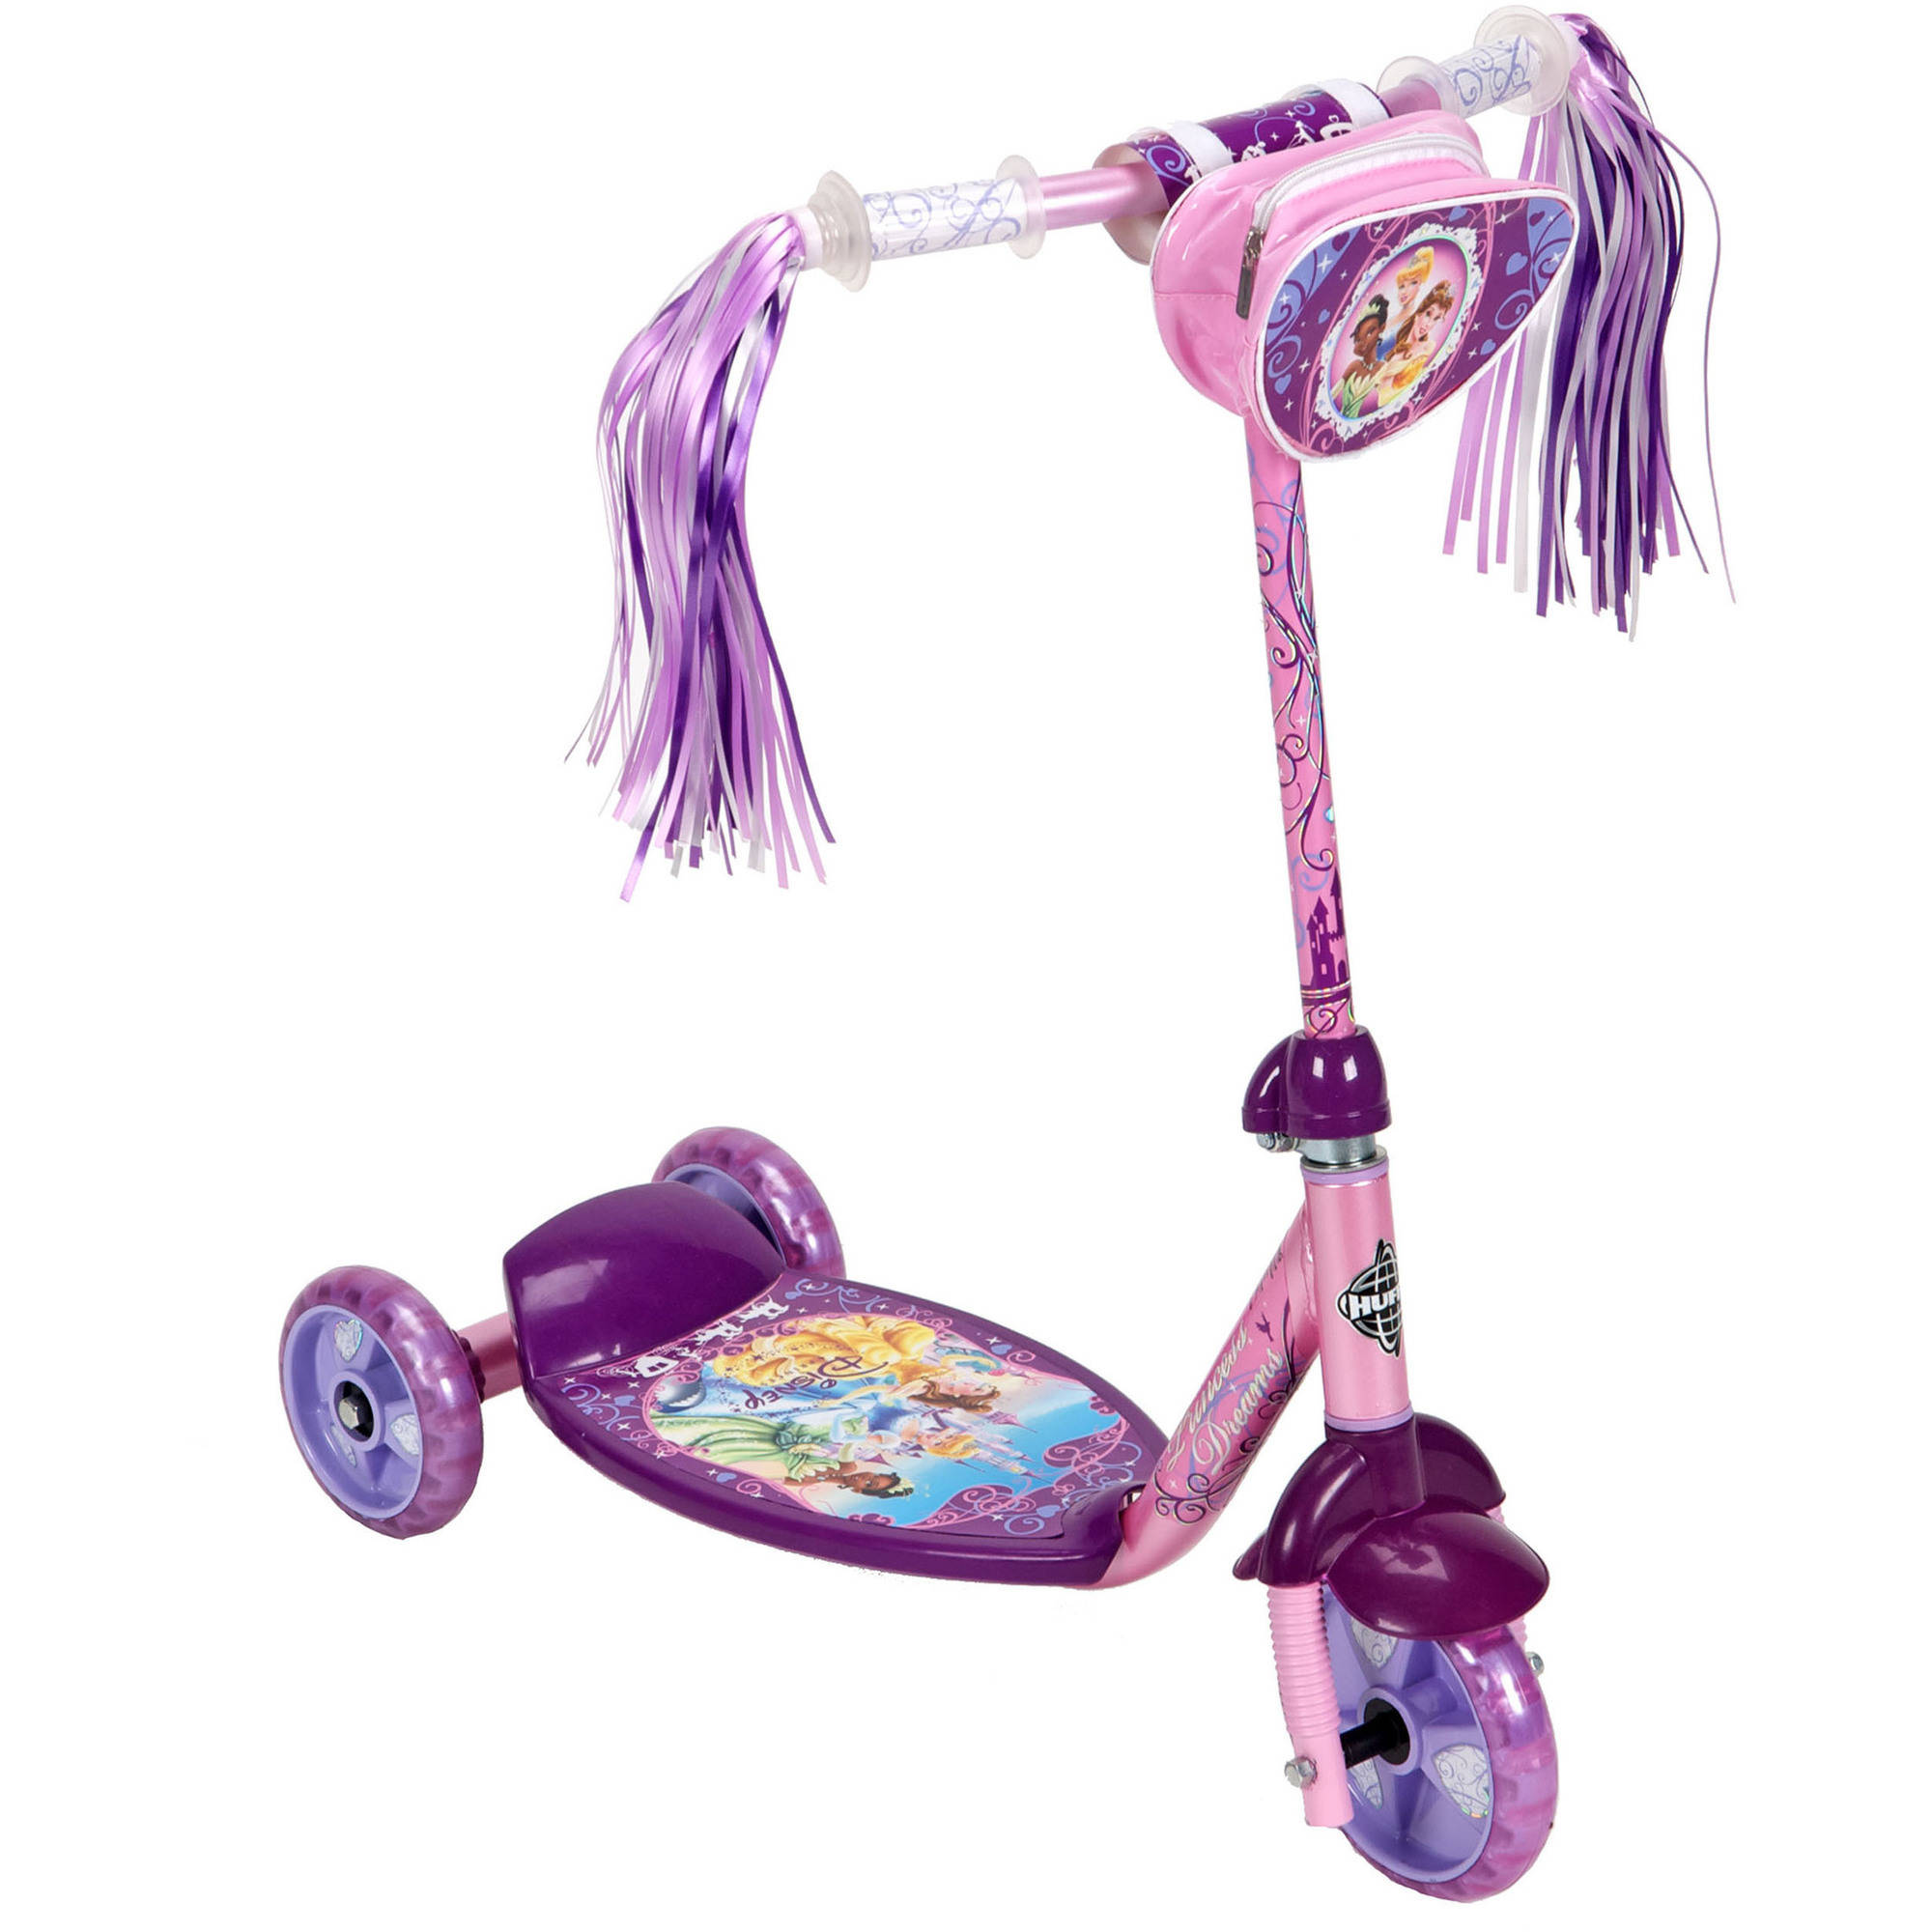 Huffy Disney Princess 3-Wheel Preschool Scooter, Pink/Purple